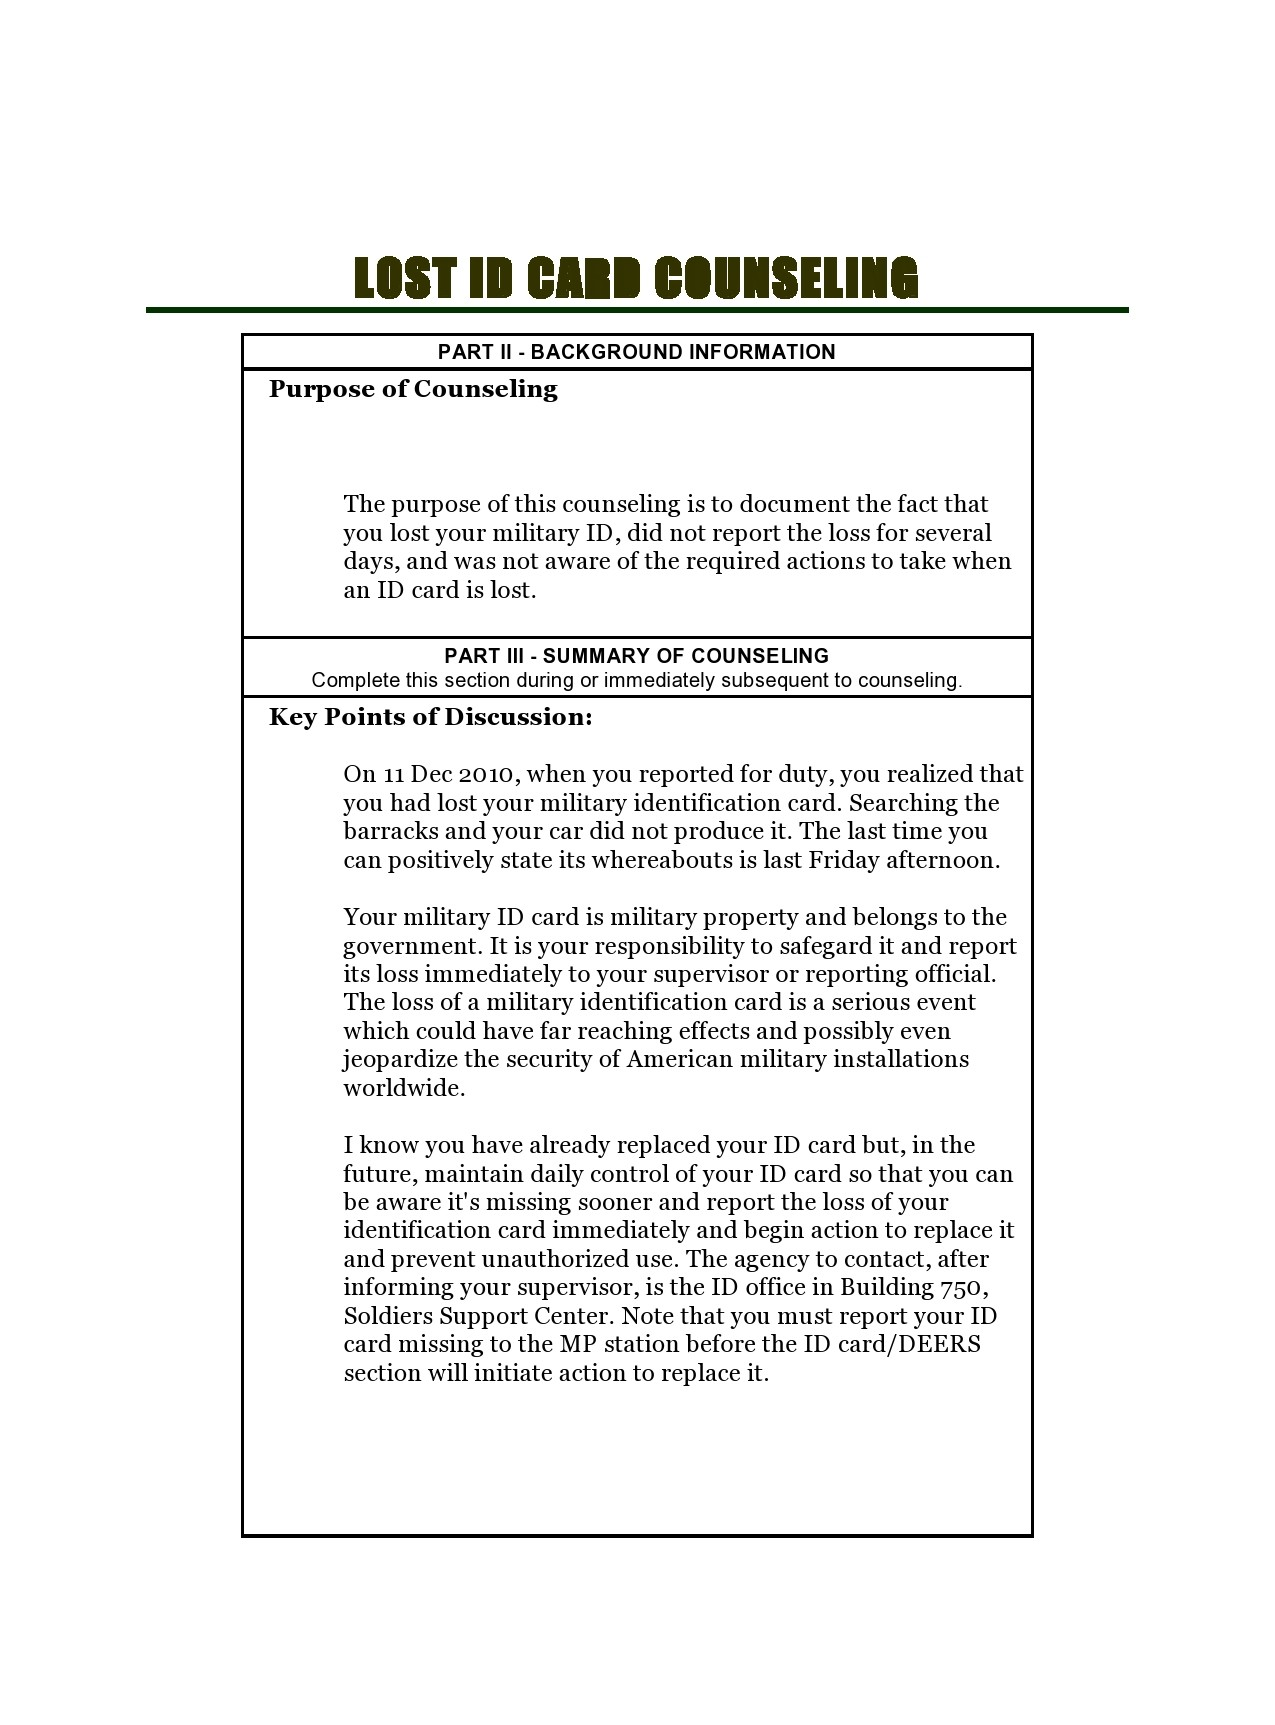 Free army counseling form 28